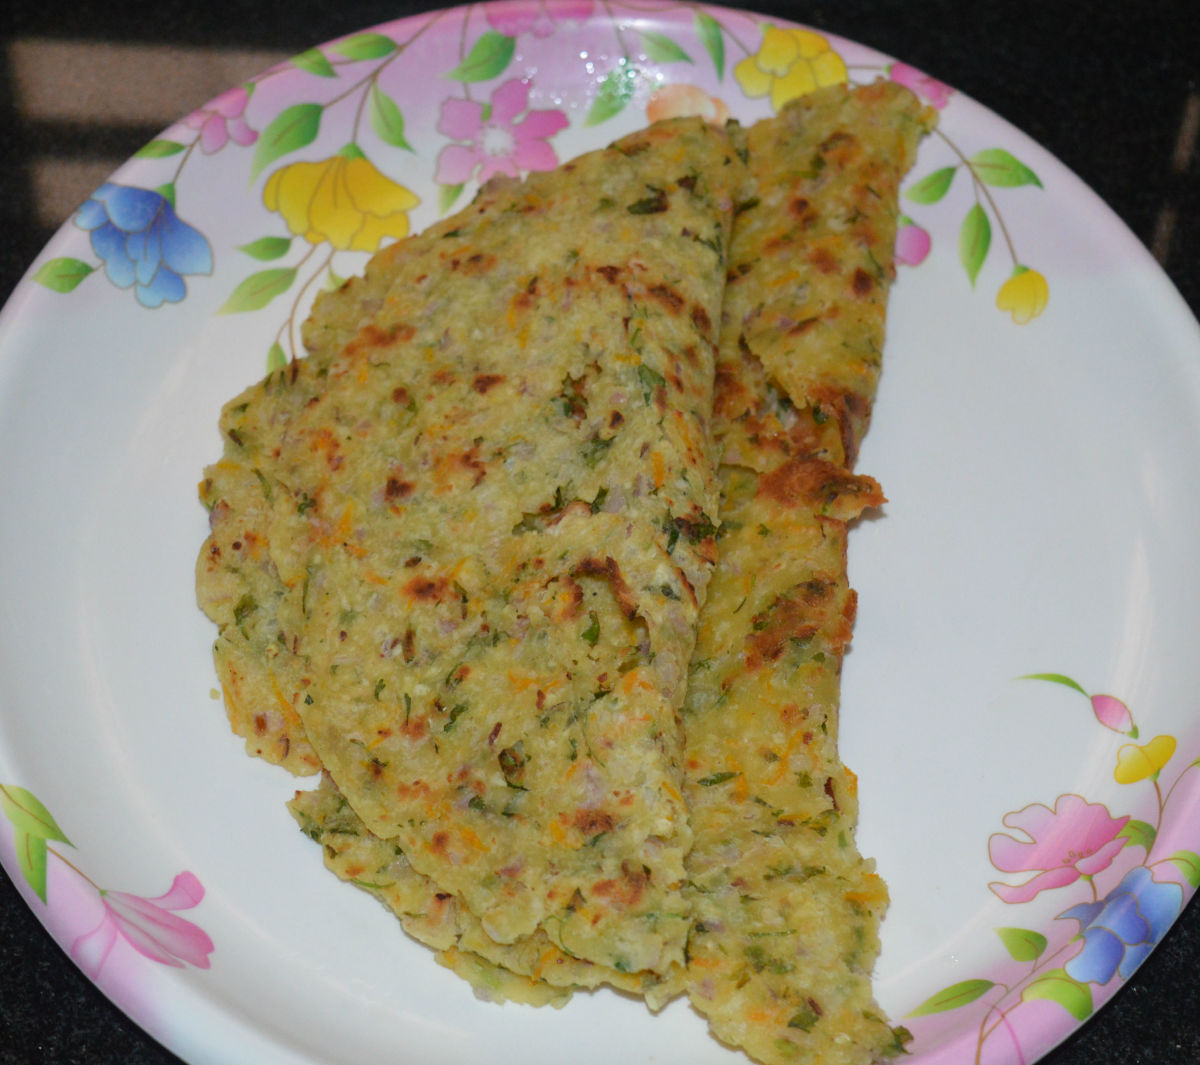 How to Make Spicy Rice Flour Flatbread, or Masala Akki Rotti